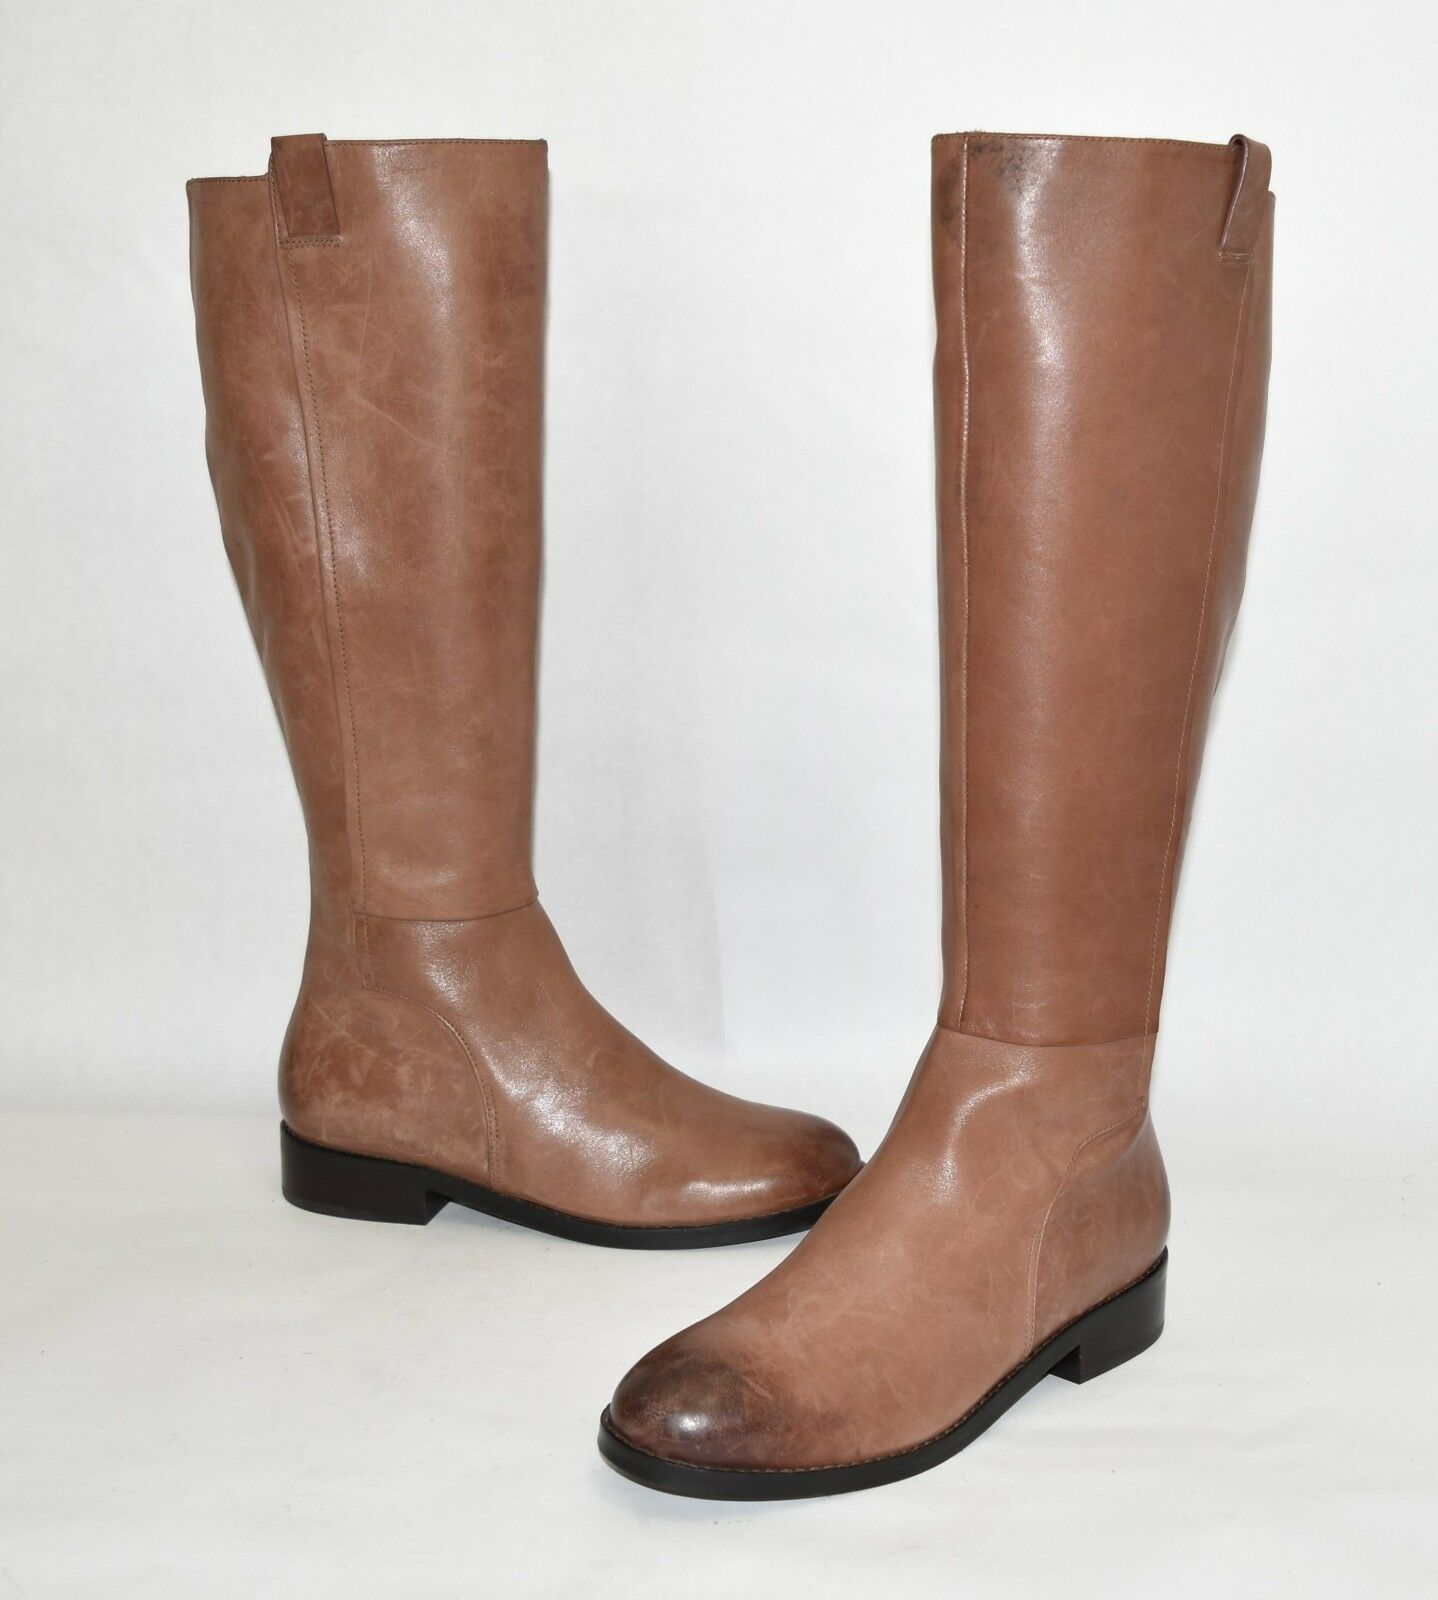 New! Cole Haan Katrina Riding Boot Brown Leather Size 6.5 B w11075